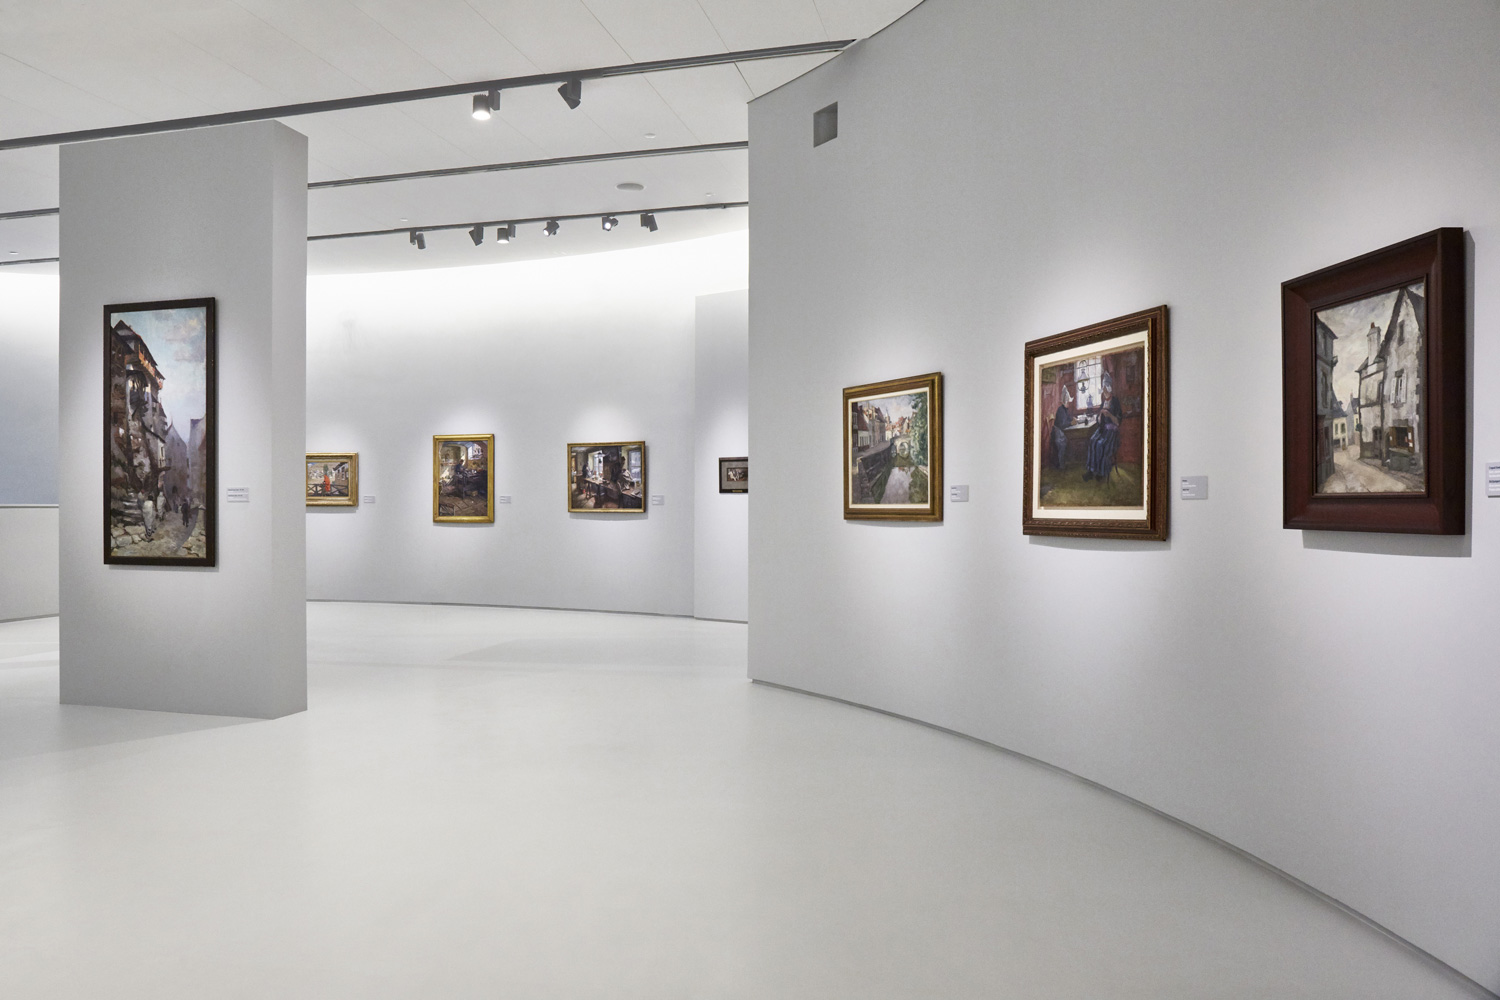 View of the gallery spaces within the Museum of Russian Impressionism